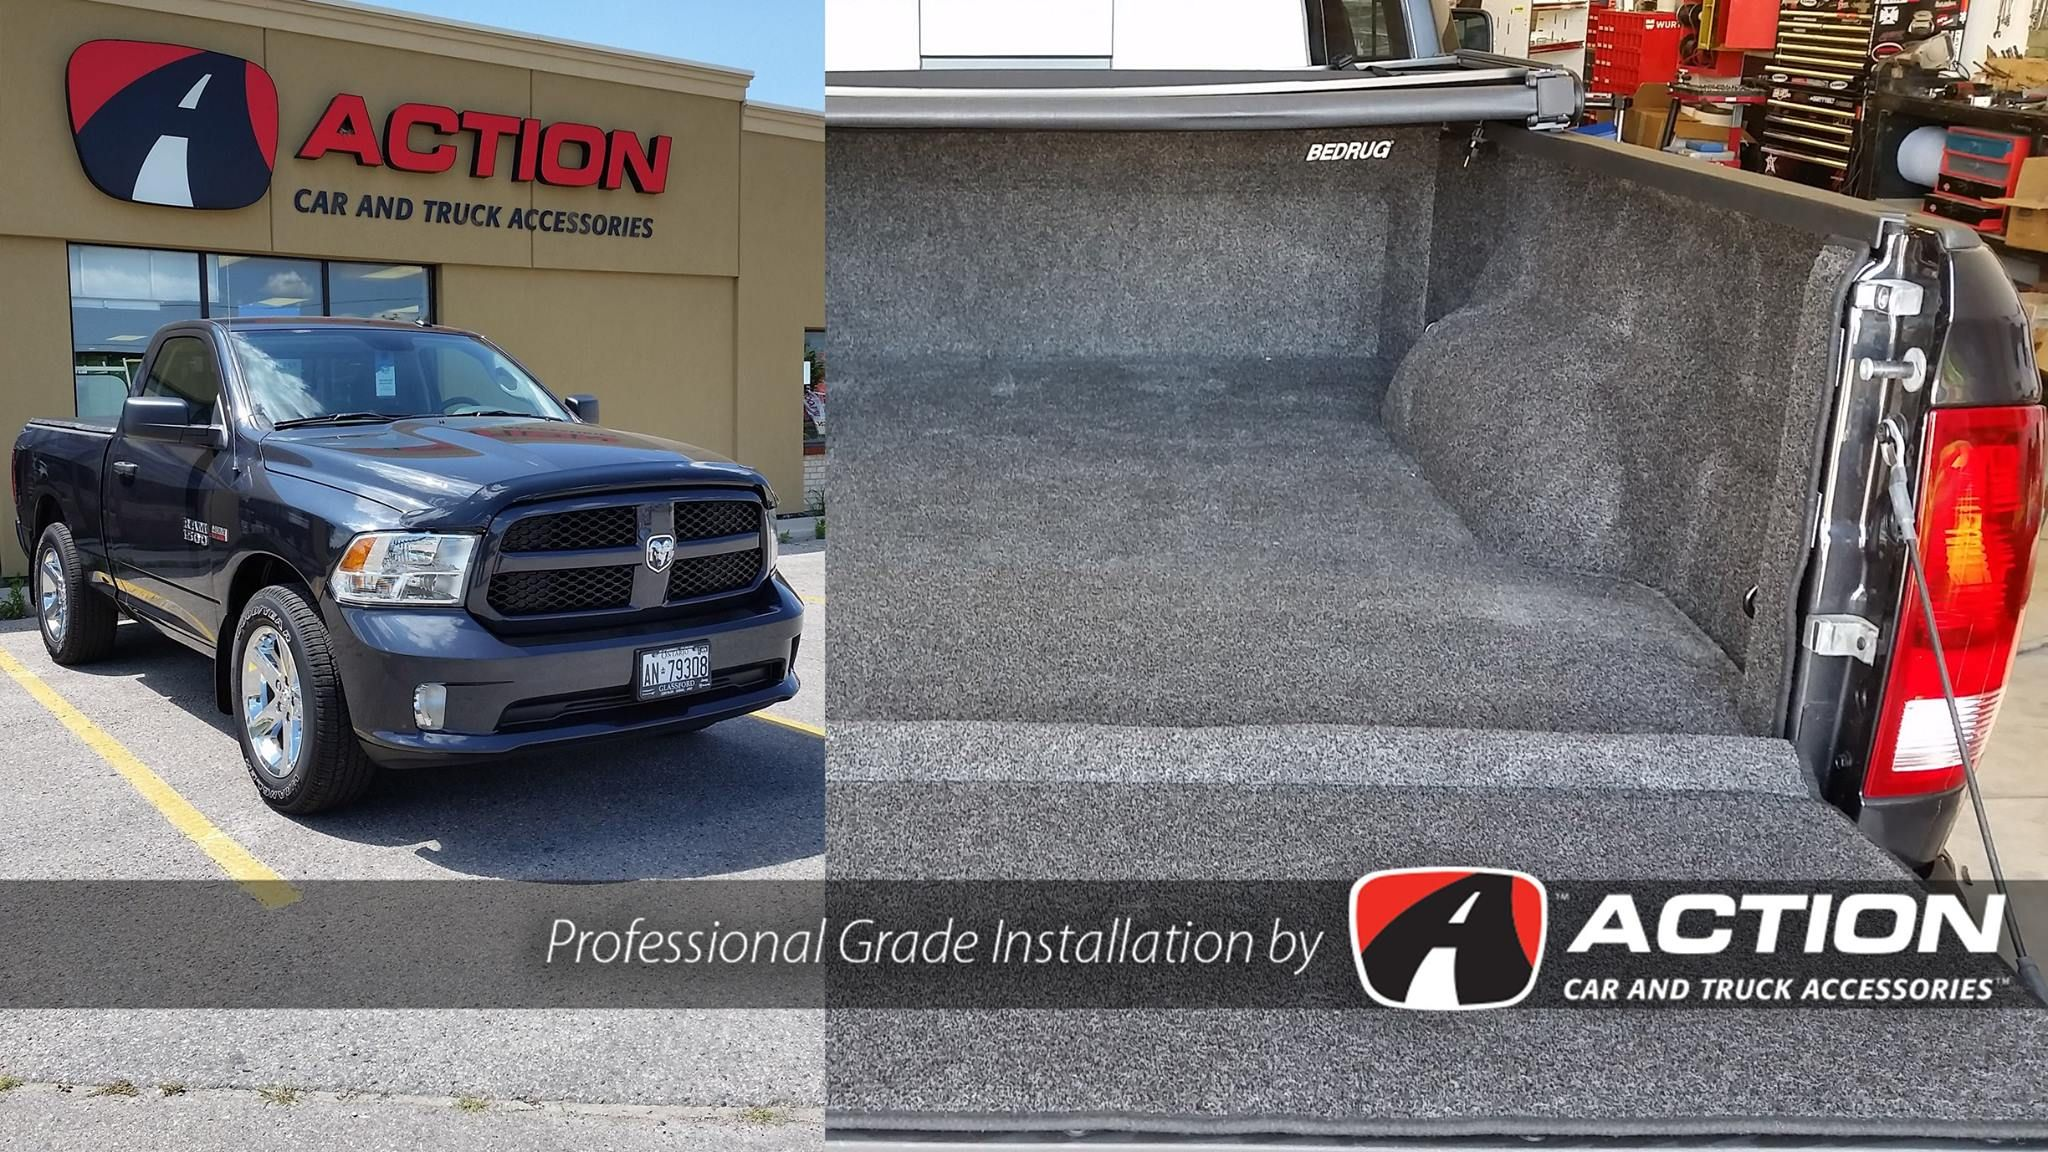 2016 Ram 1500 complete with a bed liner by BedRug